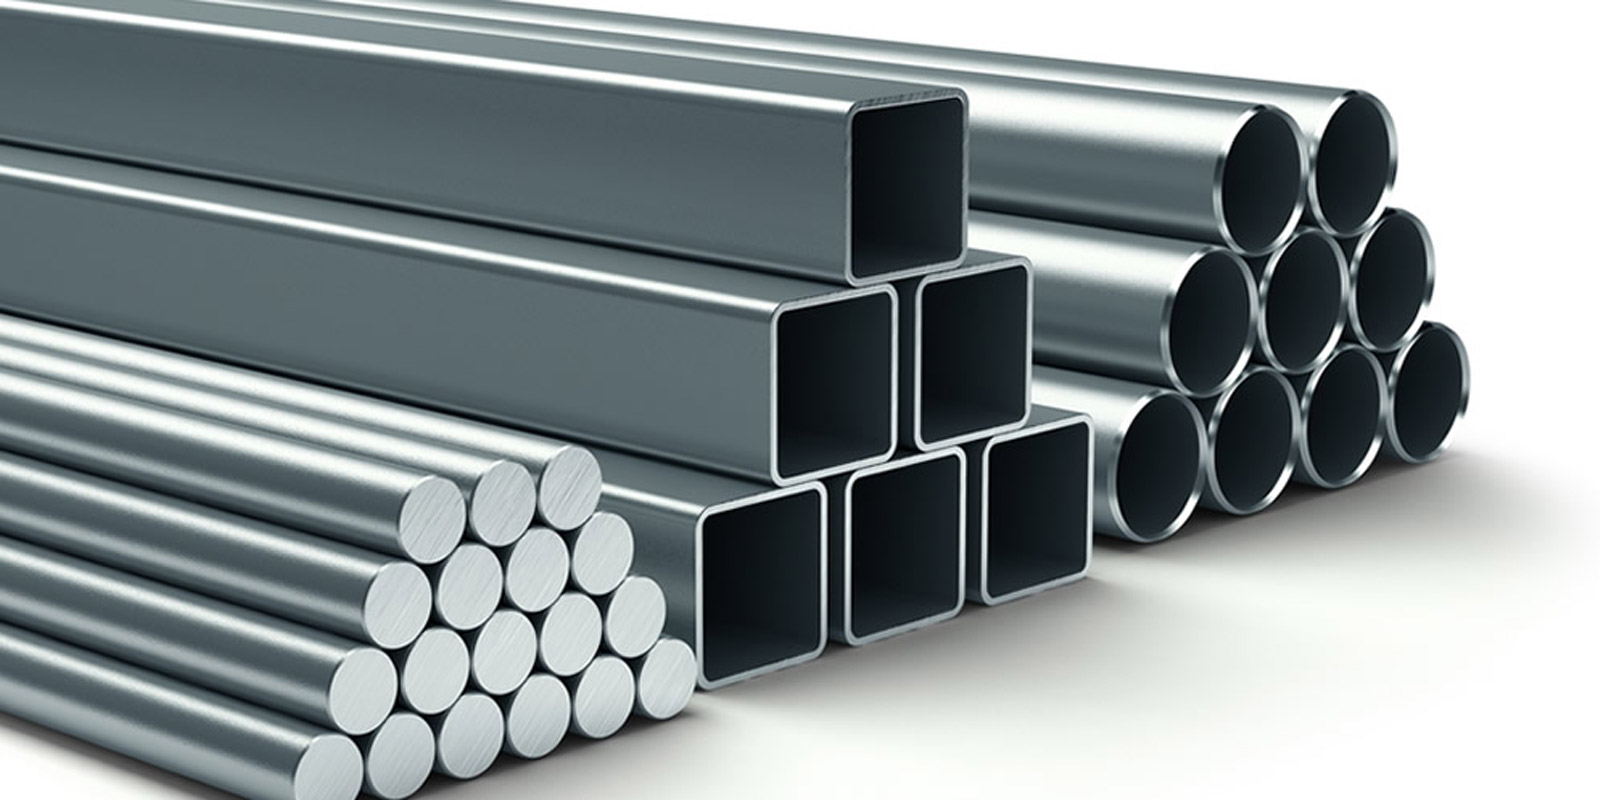 Stainless Pipe-Profile